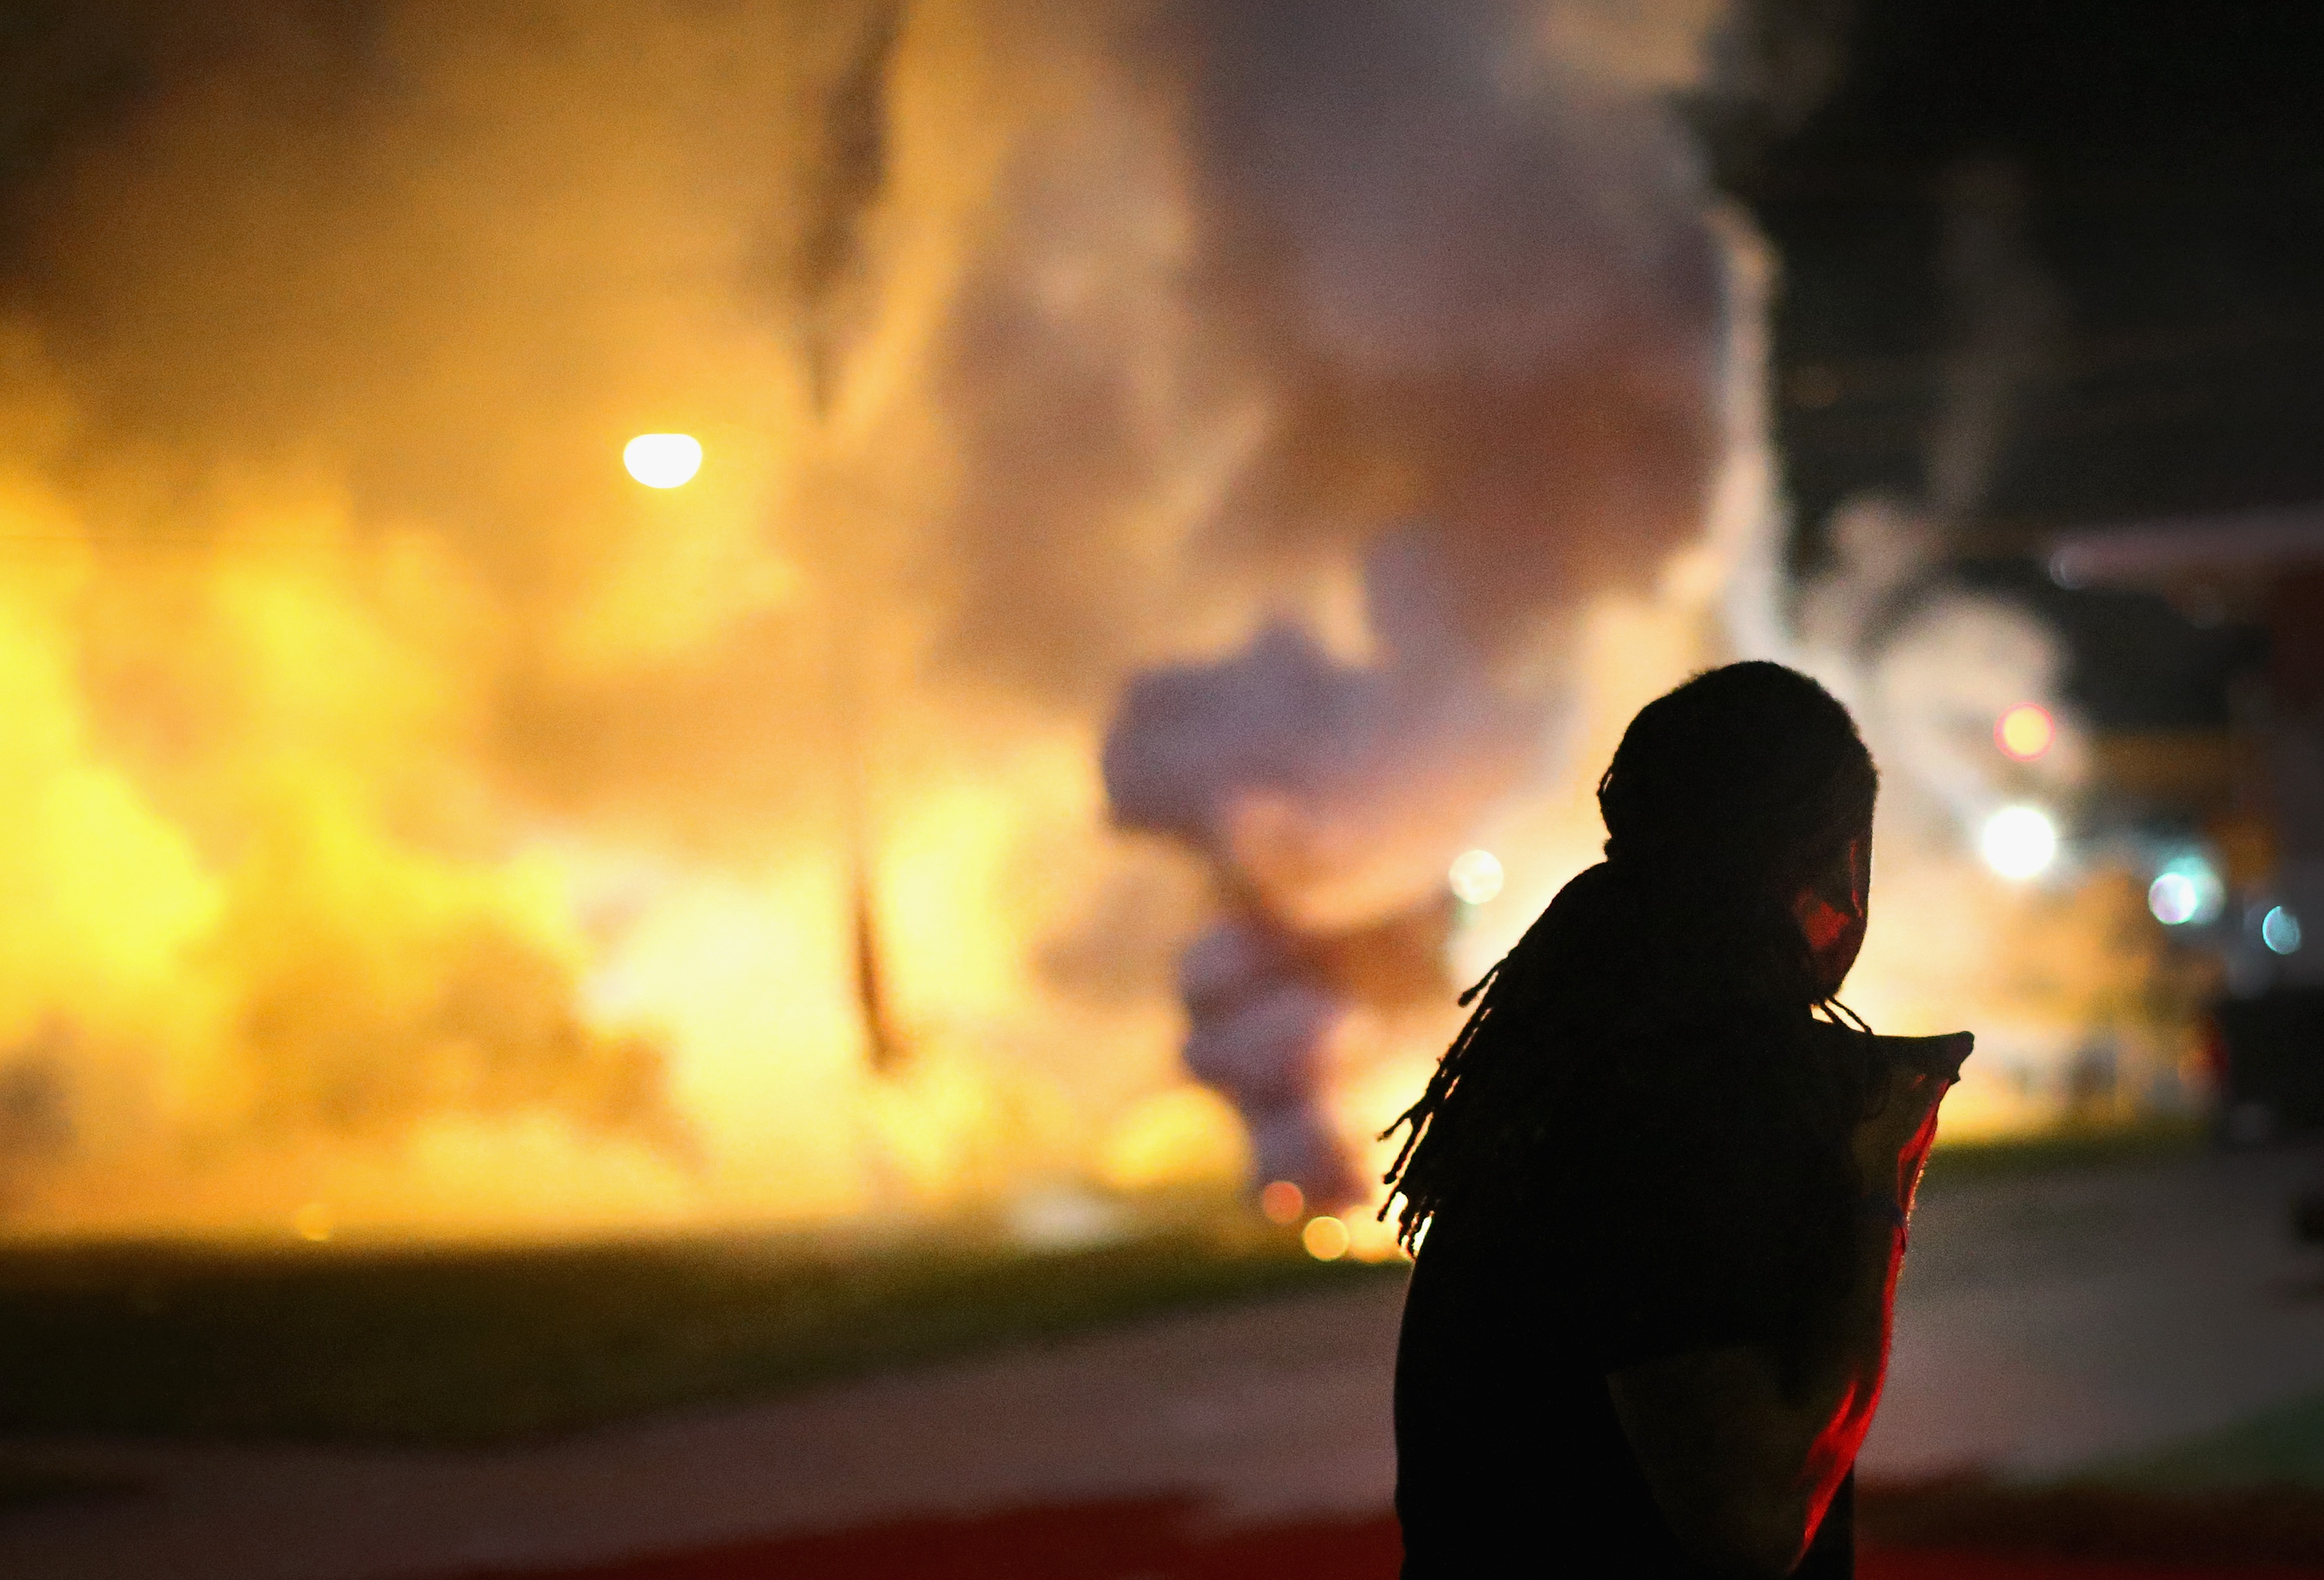 A demonstrator, protesting the shooting death of teenager Michael Brown, scrambles for cover as police fire tear gas on August 13, 2014 in Ferguson, Missouri.